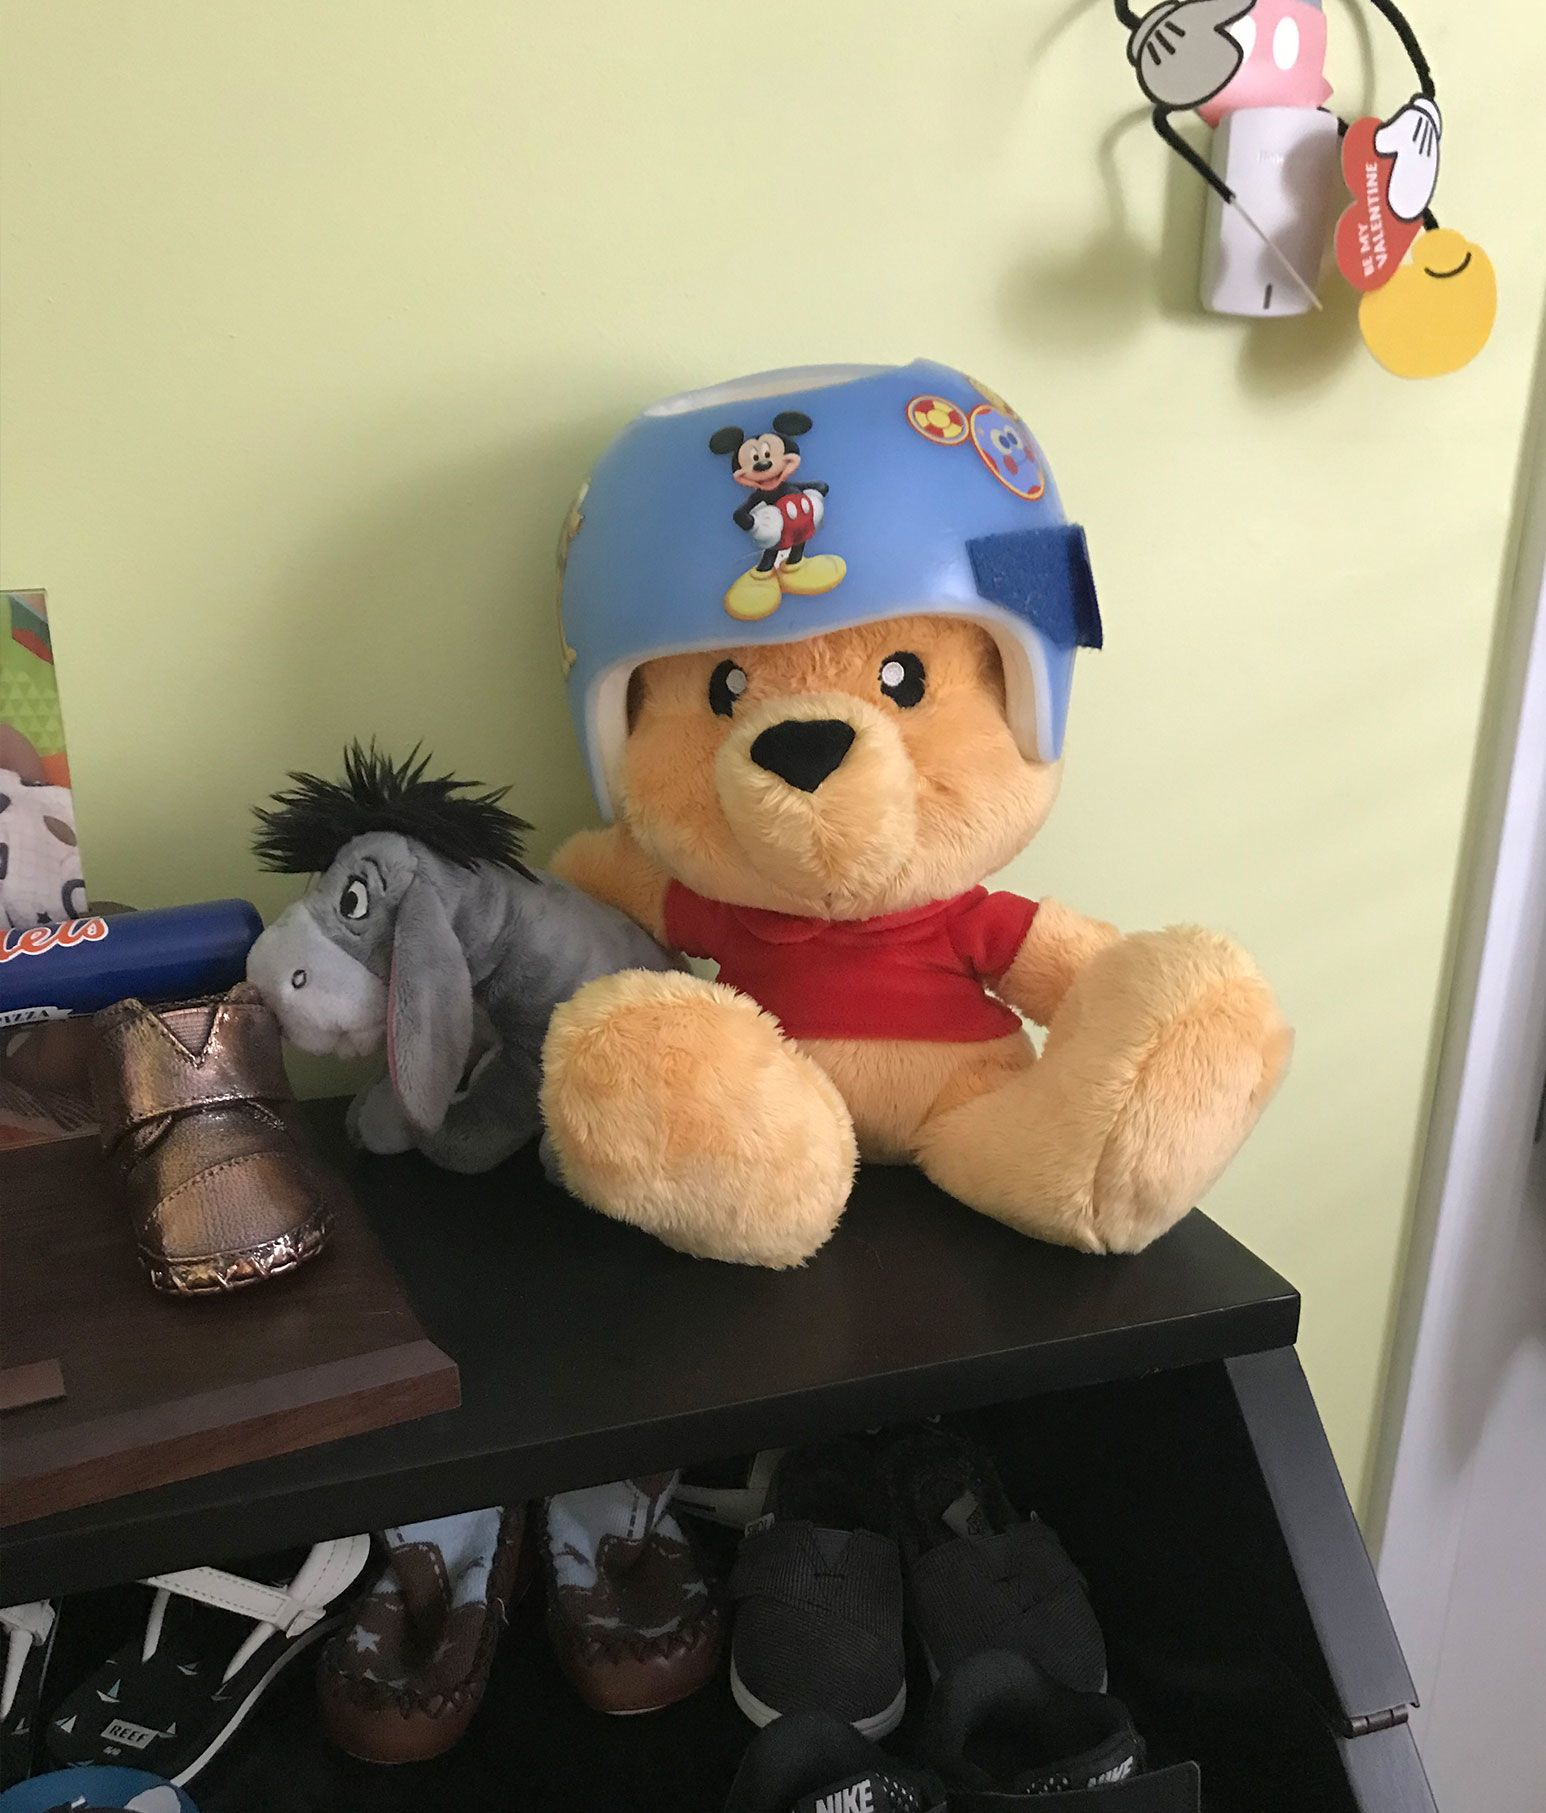 A Yellow stuffed bear rests next to a stuffed grey donkey on top of a shoe drawer. The yellow bear is wearing a blue helmet with stickers of Disney characters around it.